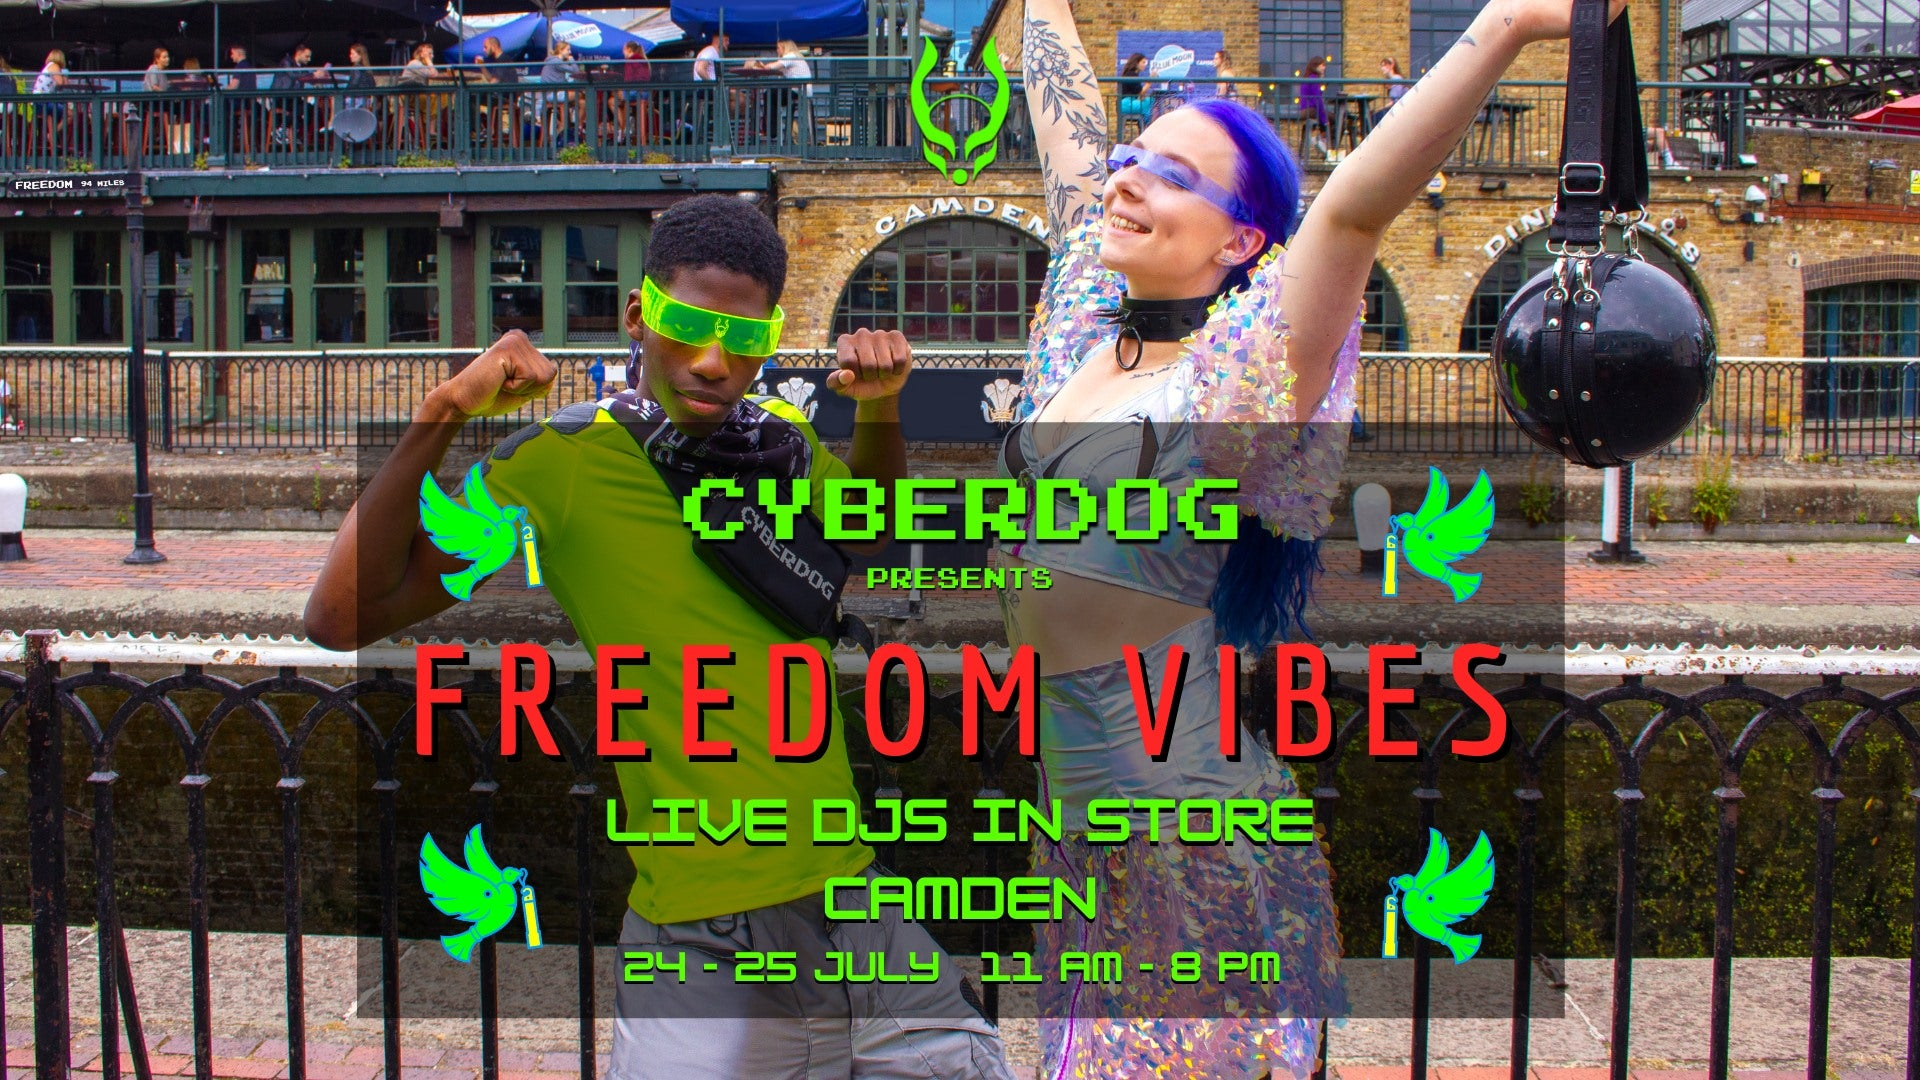 Freedom Vibes Event